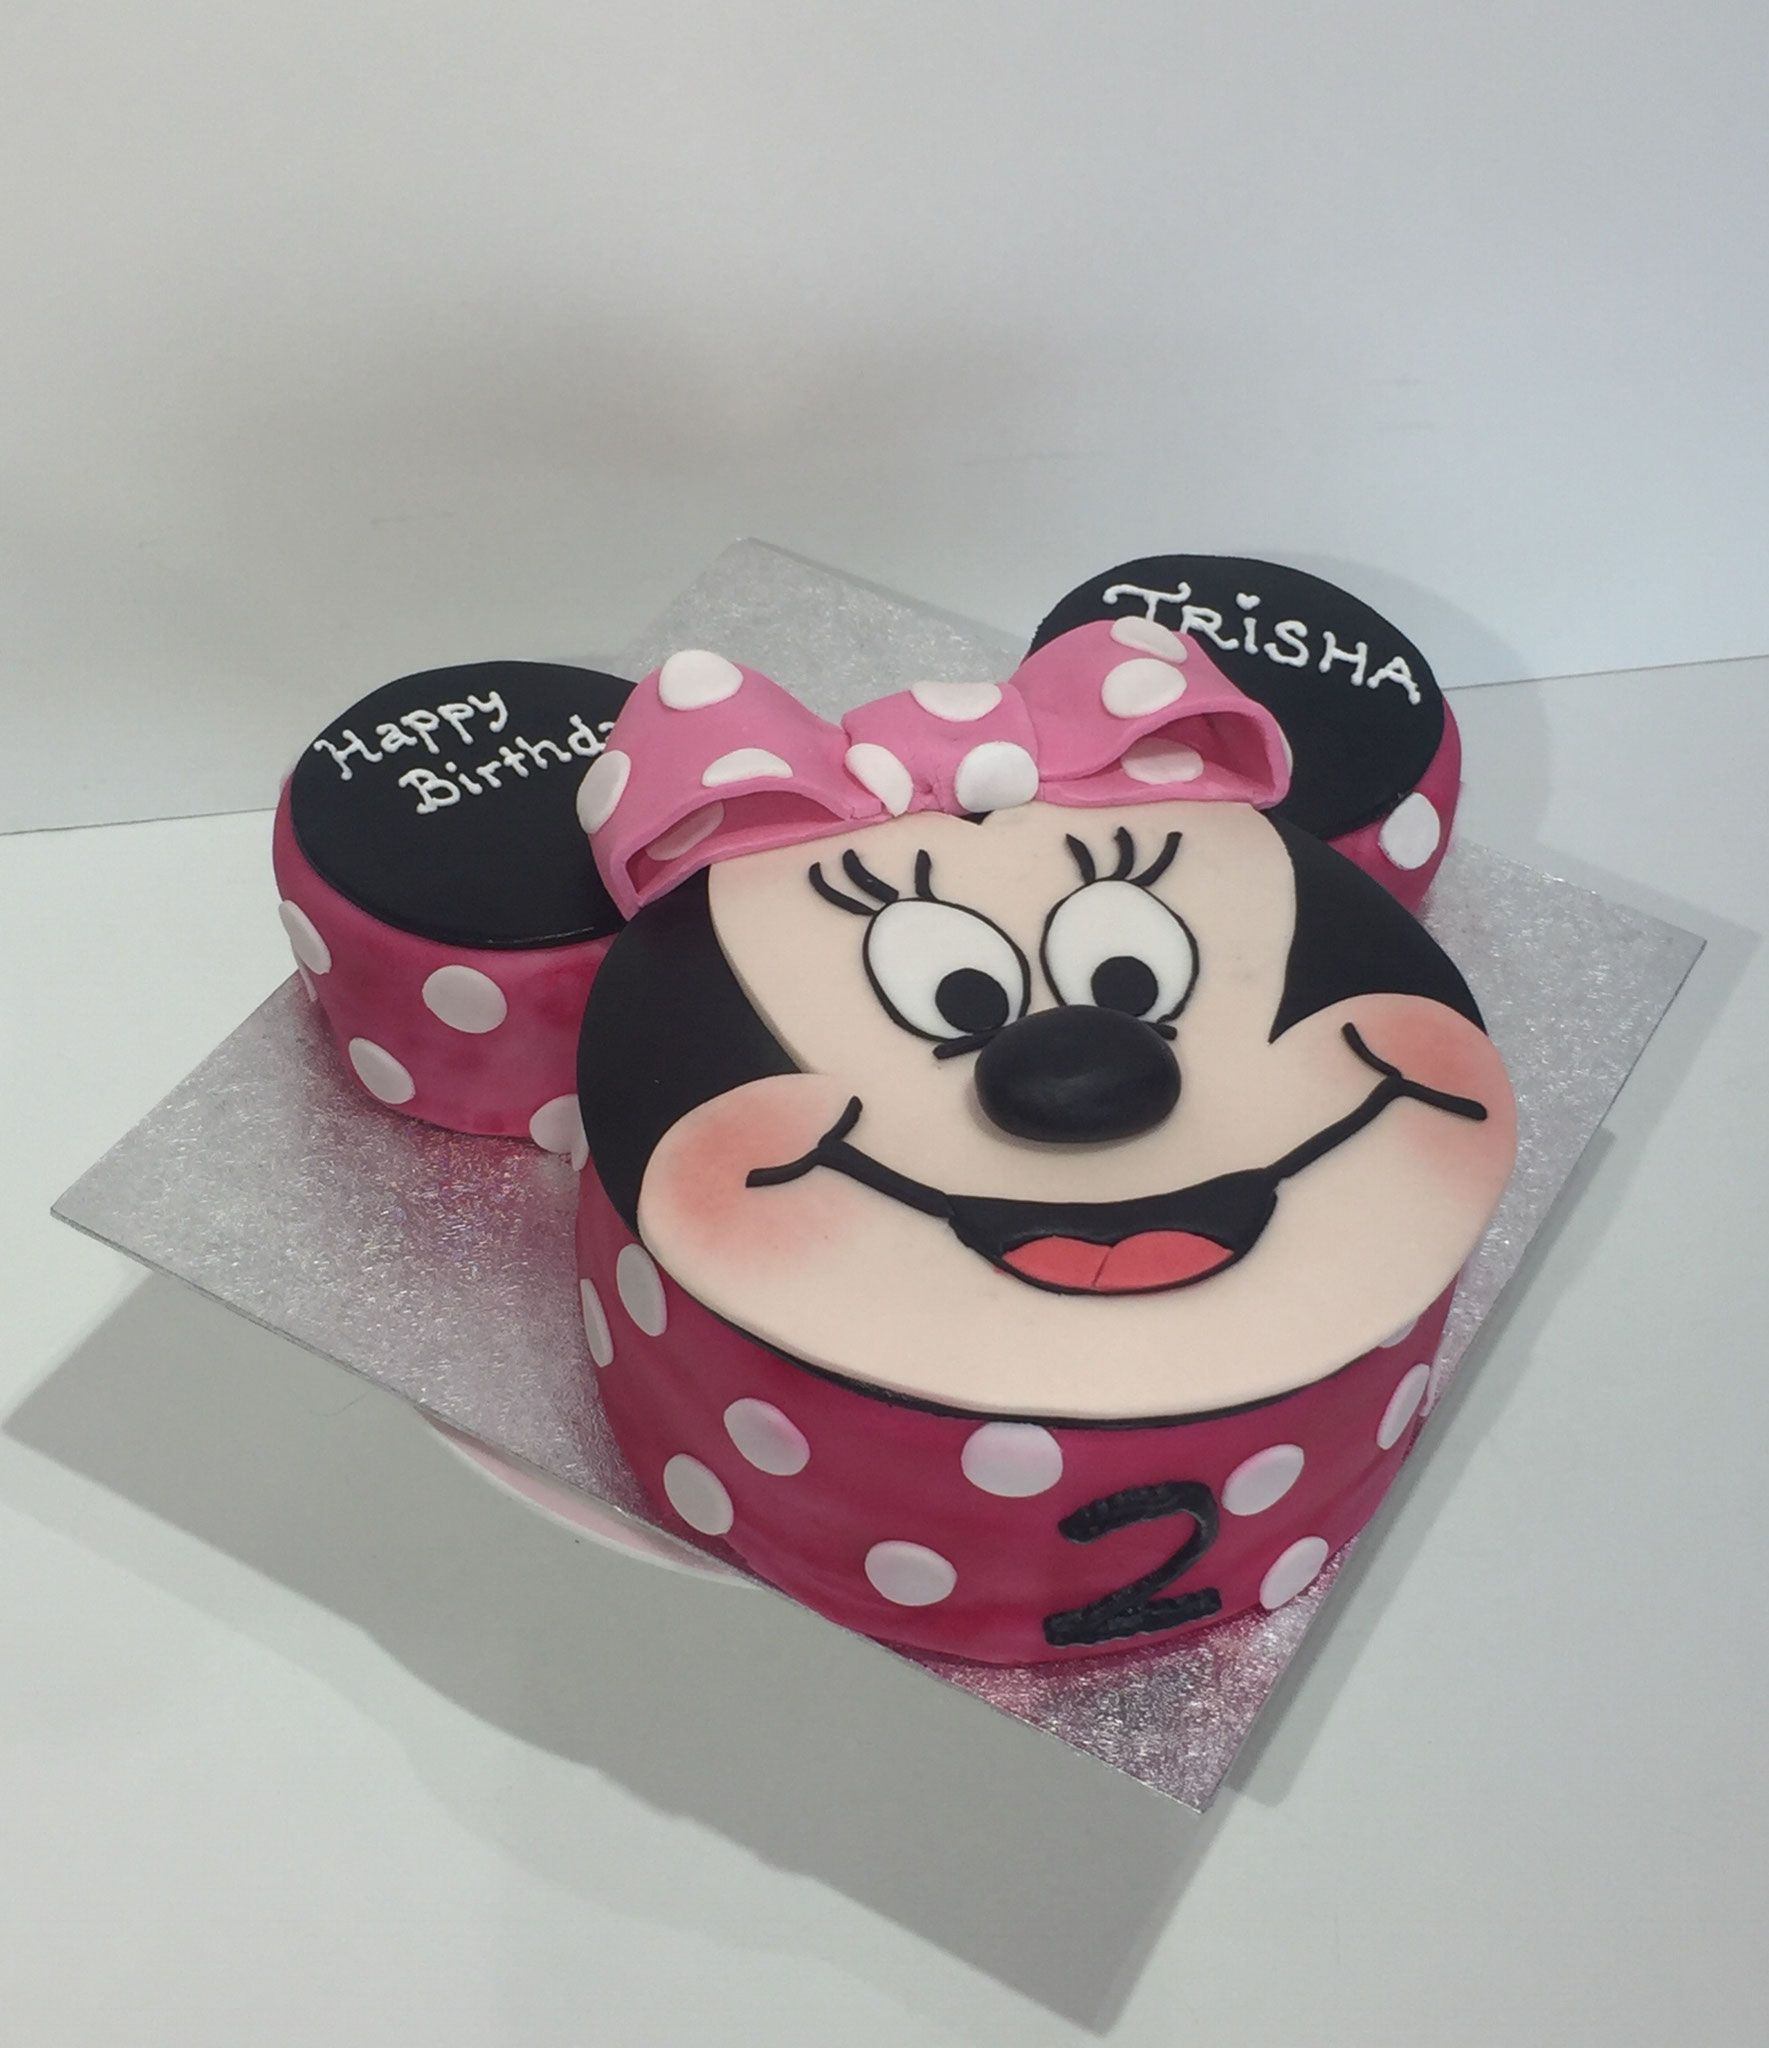 Minnie Mouse Cake Minnie Maus Torte Pink